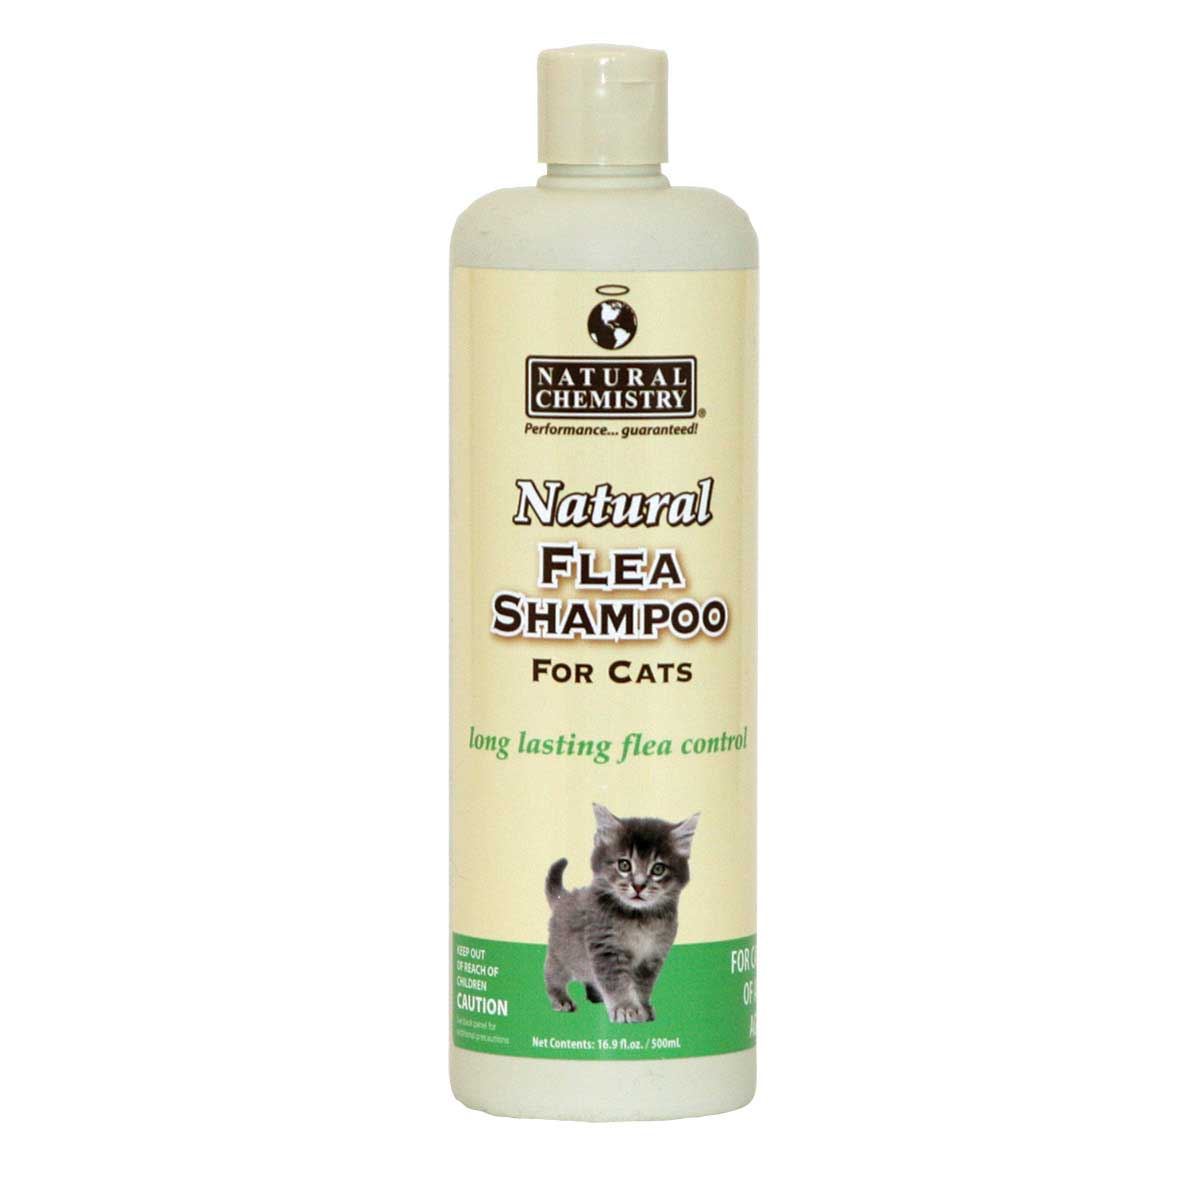 16 oz Natural Chemistry Natural Flea & Tick Shampoo For Cats - Long Lasting Flea Control